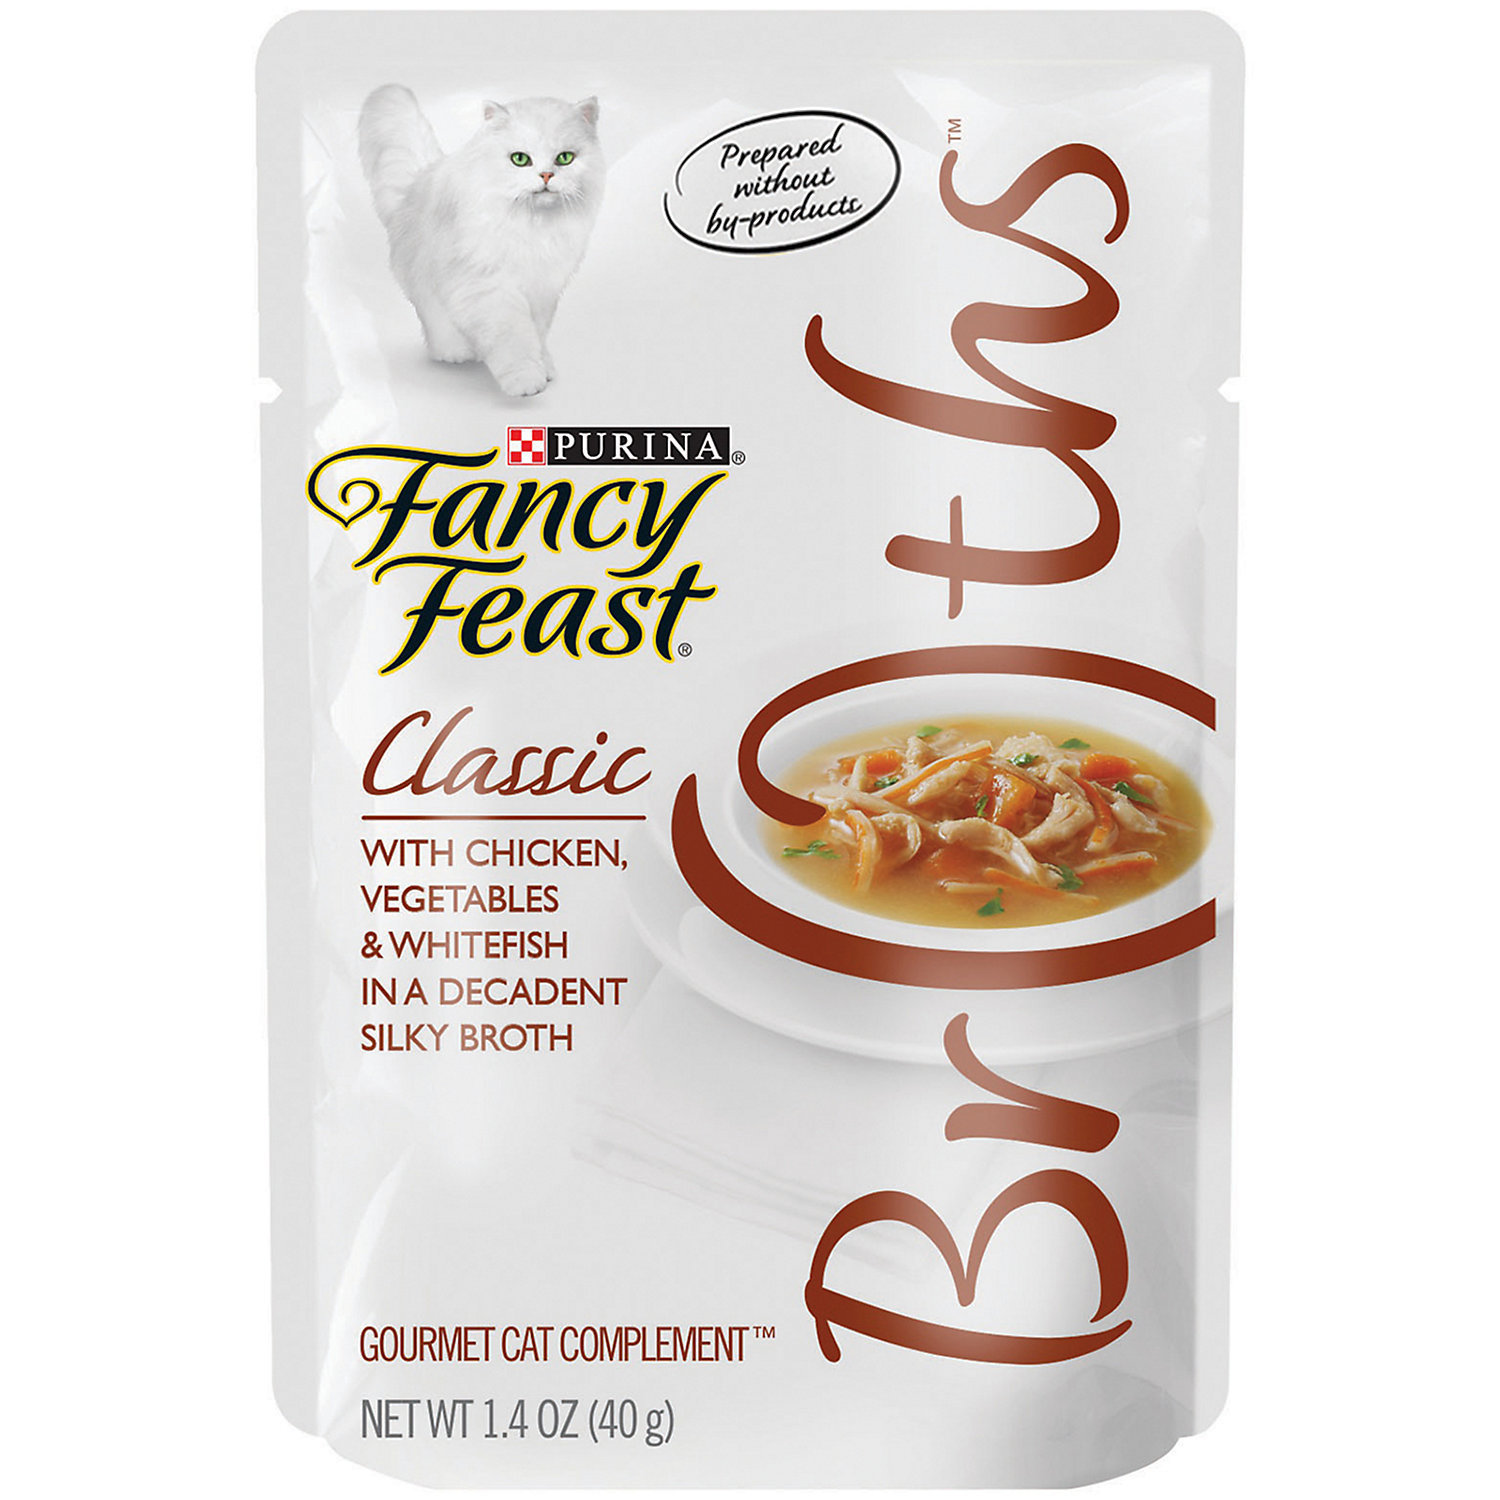 Fancy Feast Broths Classic Chicken, Vegetables & Whitefish Cat Food Complement,1.4 oz pouches 16 count